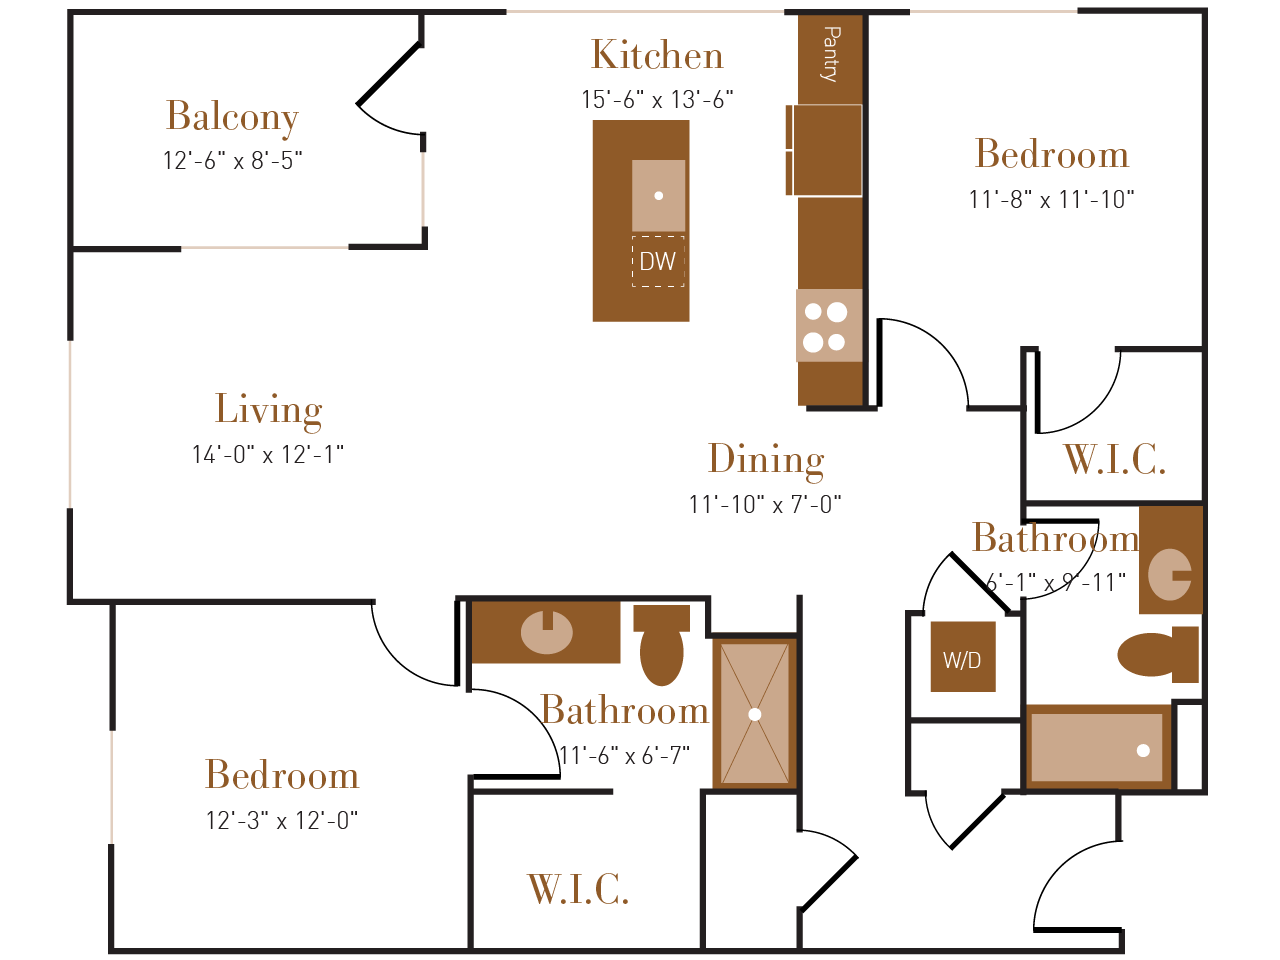 B Three A floor plan diagram. Two bedrooms, two bathrooms, an open kitchen dining and living area, a balcony, and a washer dryer.